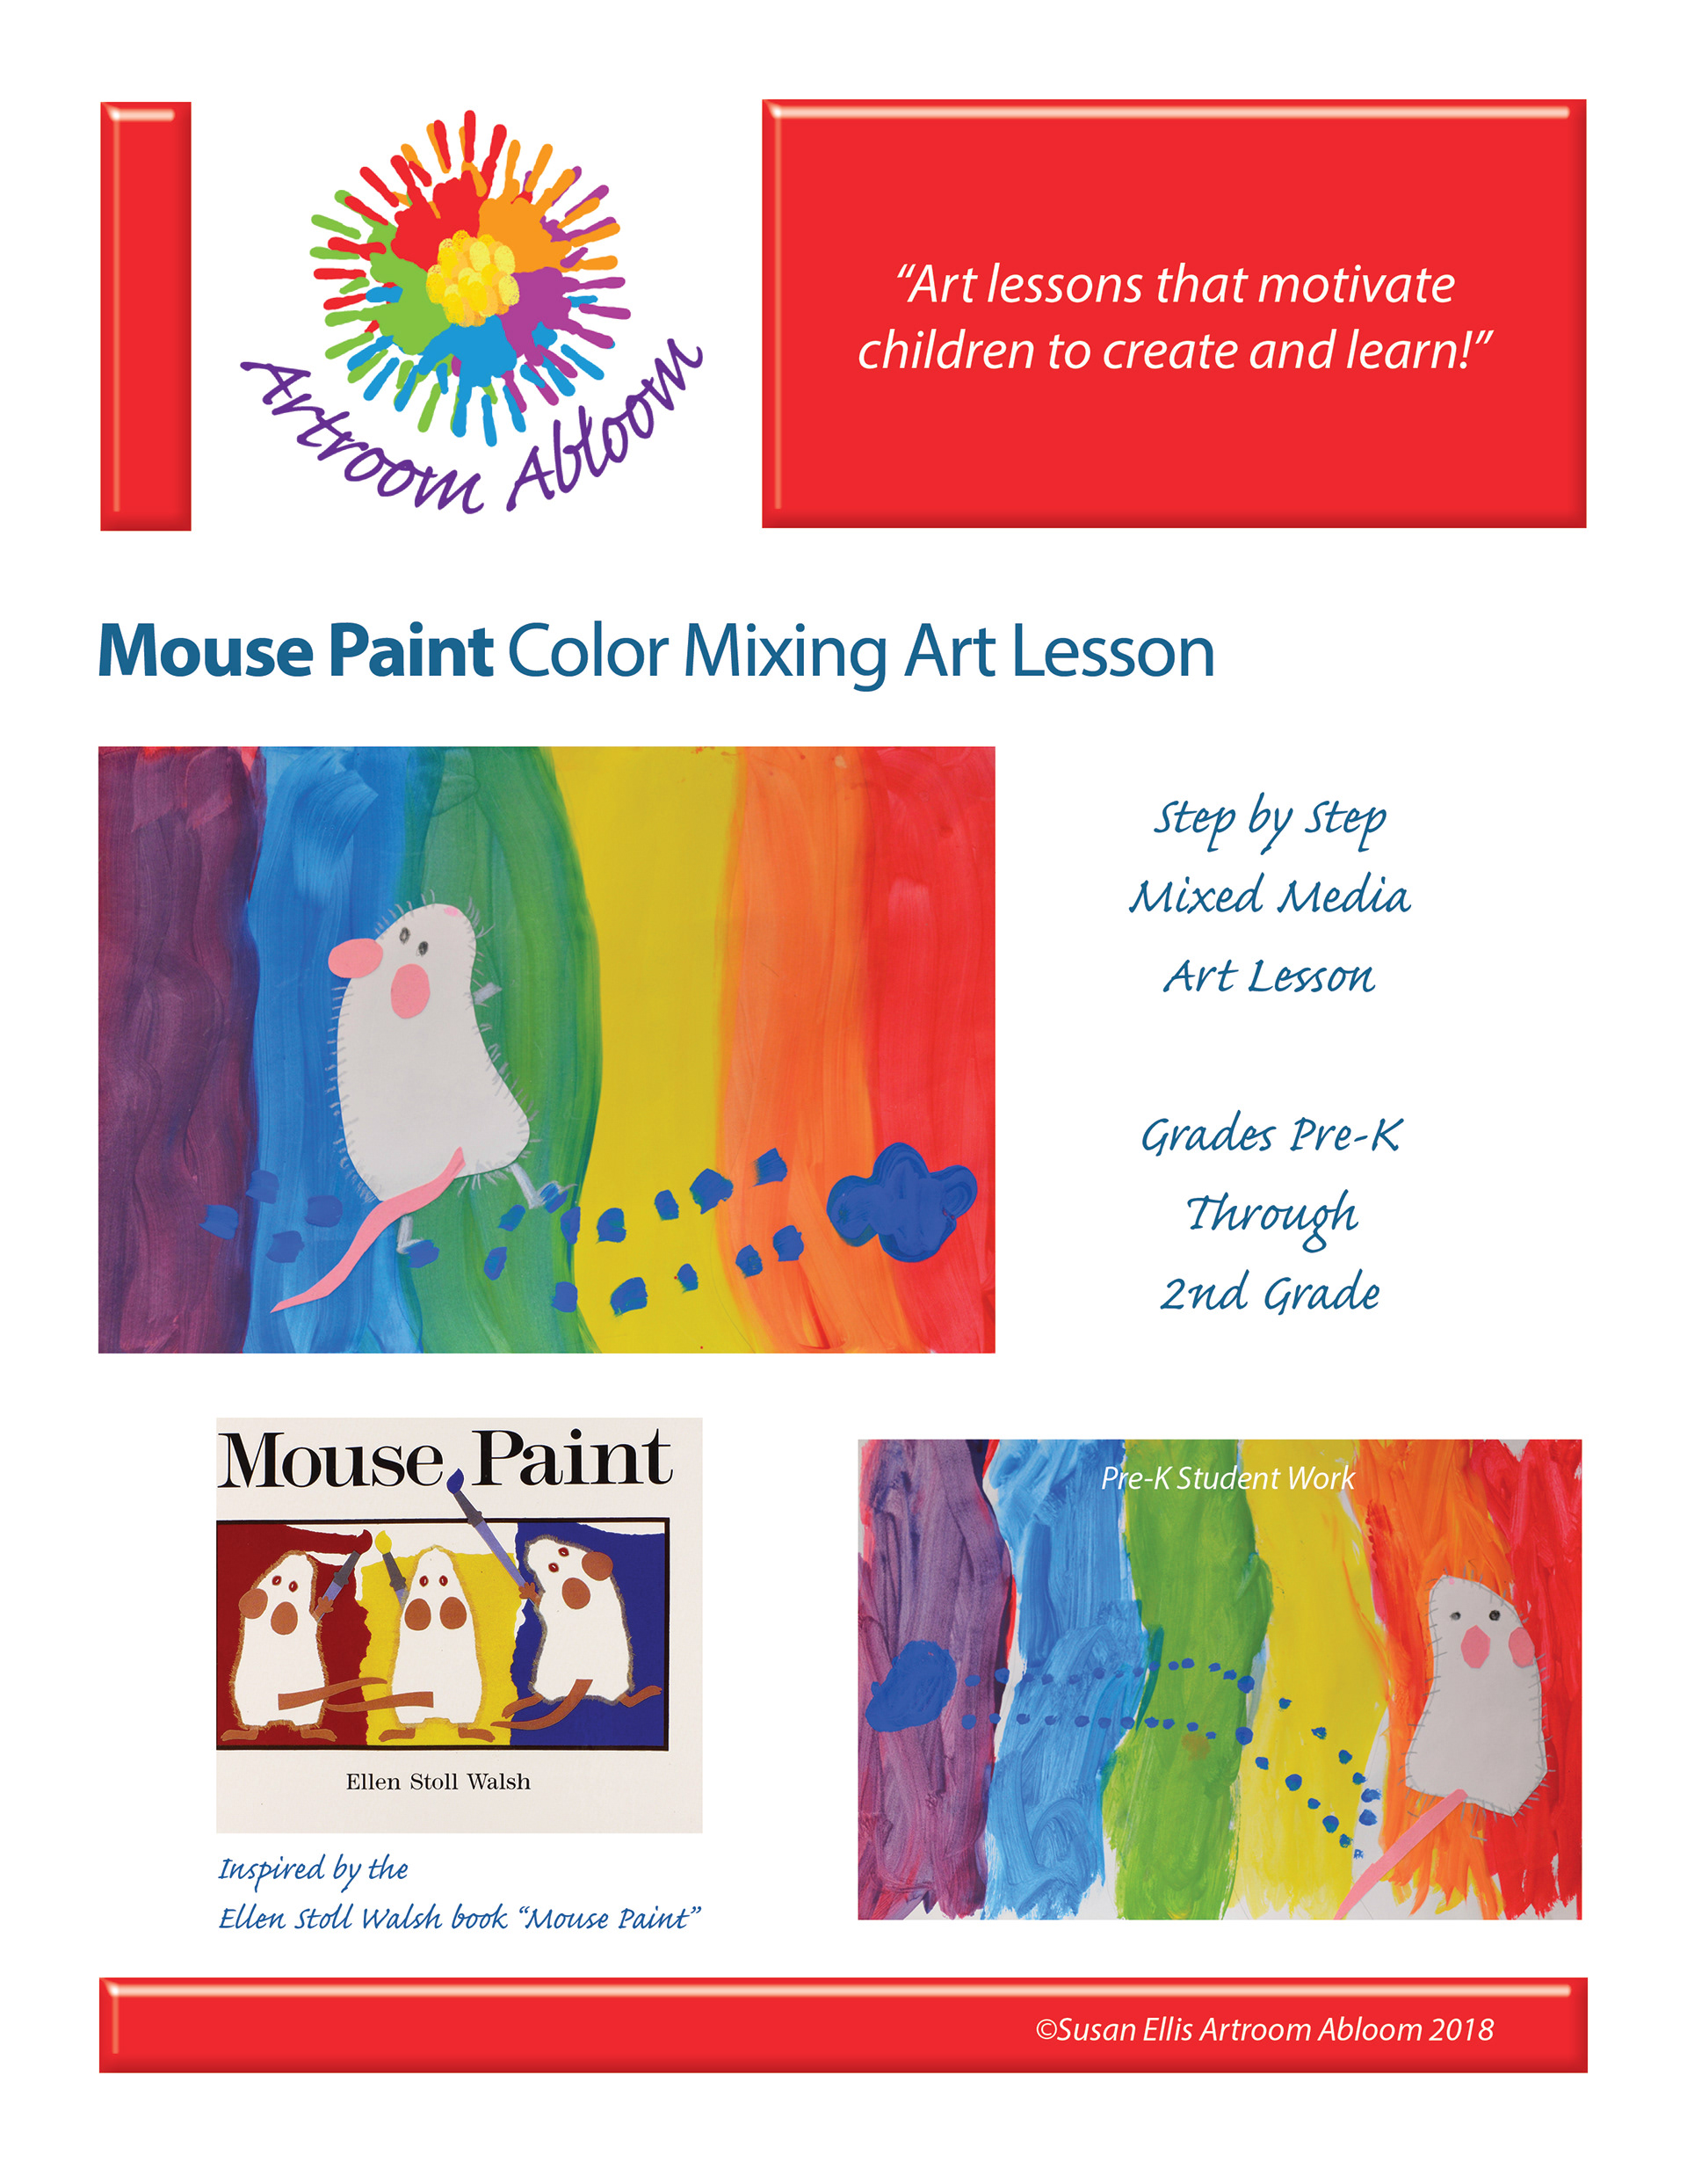 artroom abloom mouse paint color mixing art lesson